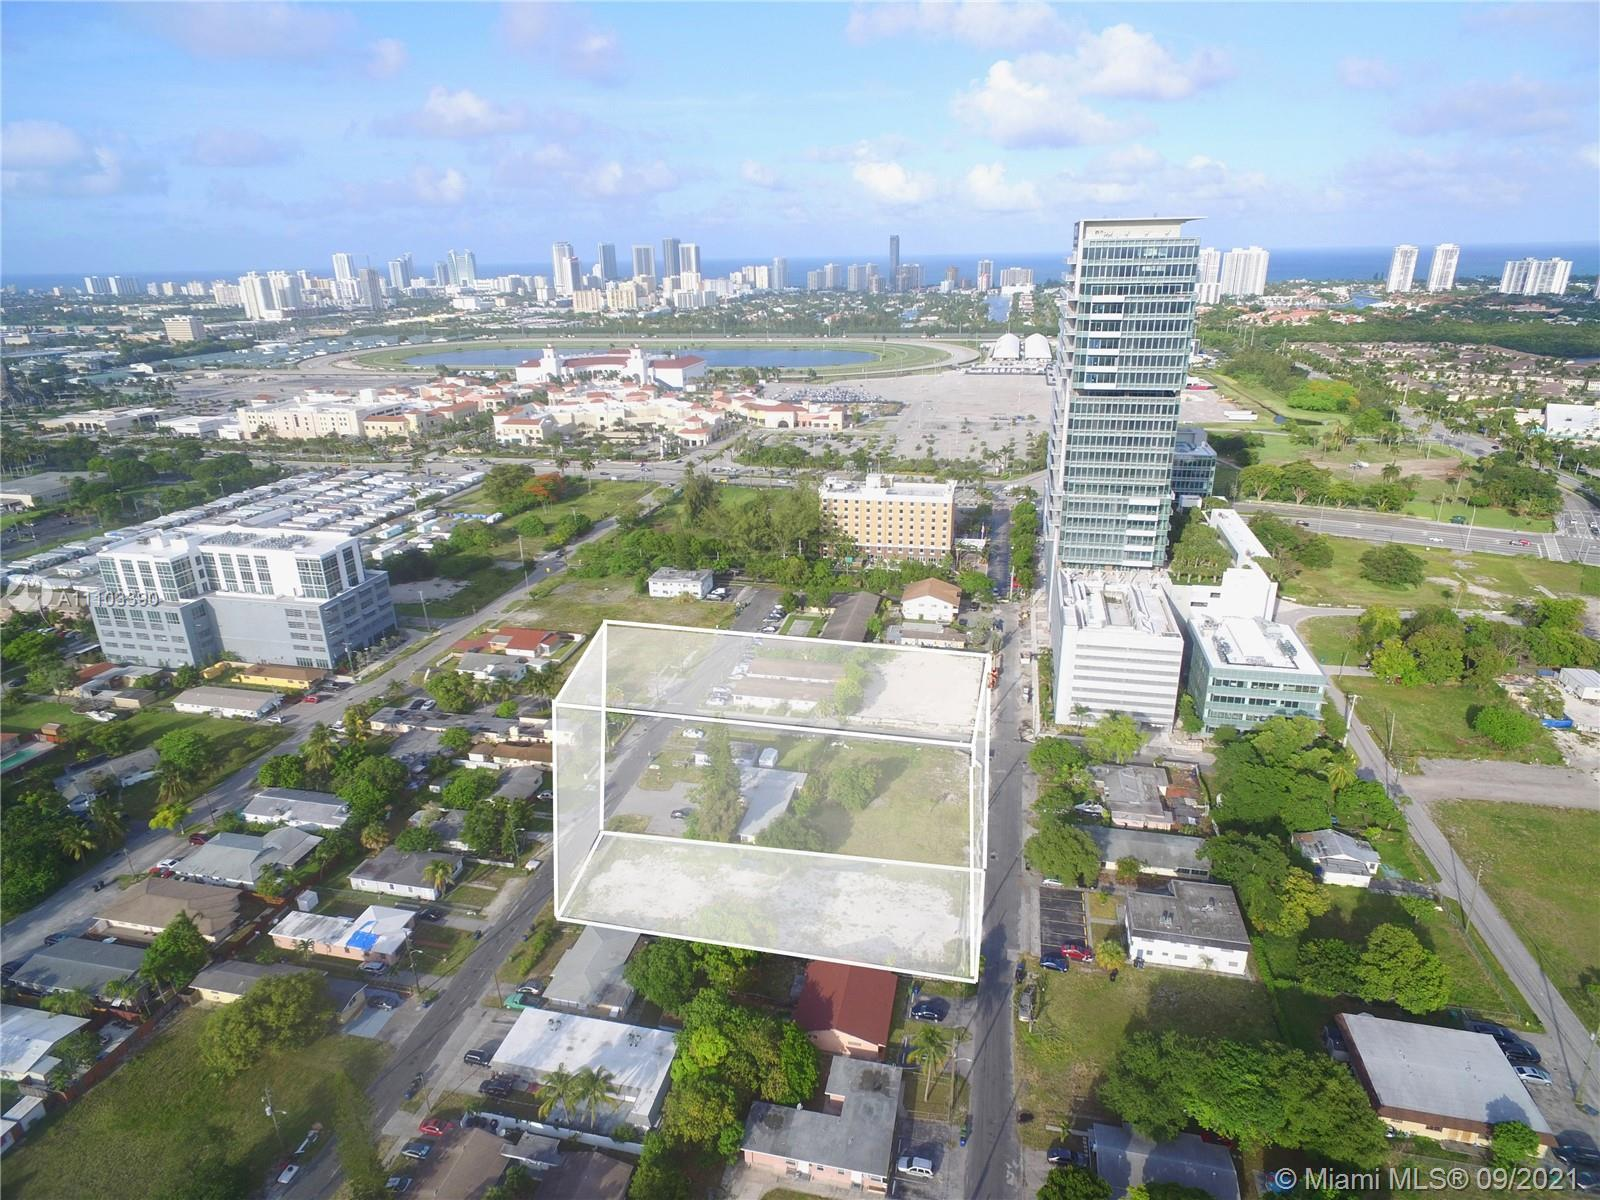 VACANT LAND READY TO DEVELOP. FOUR PARCELS BEING SOLD TOGETHER TO MAKE 1/2 ACRE OF 19800 SQ.FT IN AN